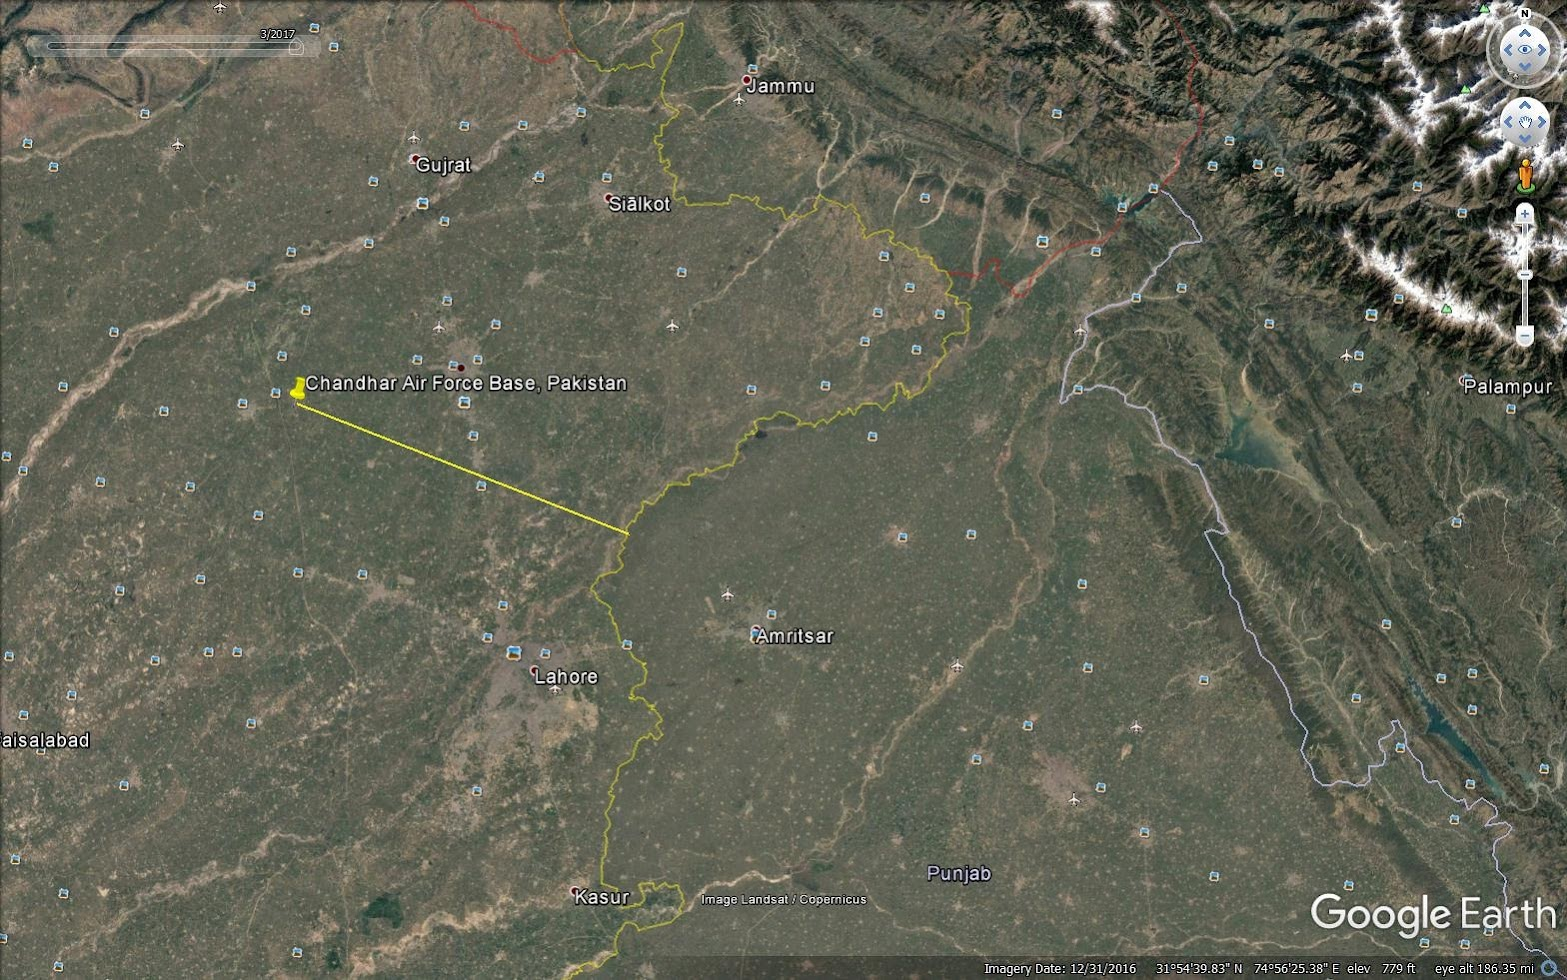 Chandhar airbase, Distance from border 77 km